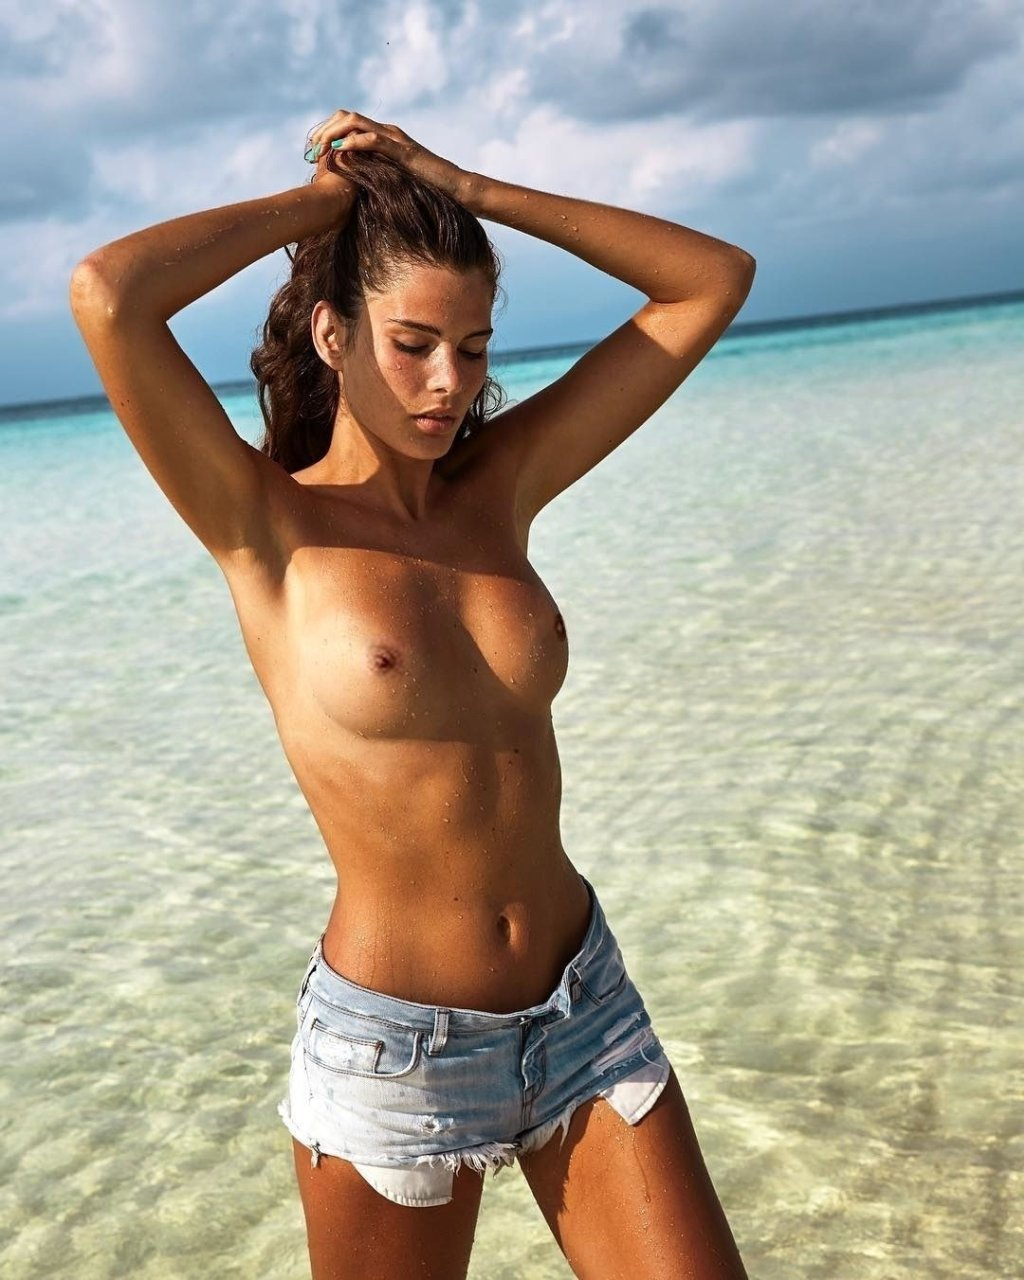 Monica Cima Nude Photos And Videos  Thefappening-6591